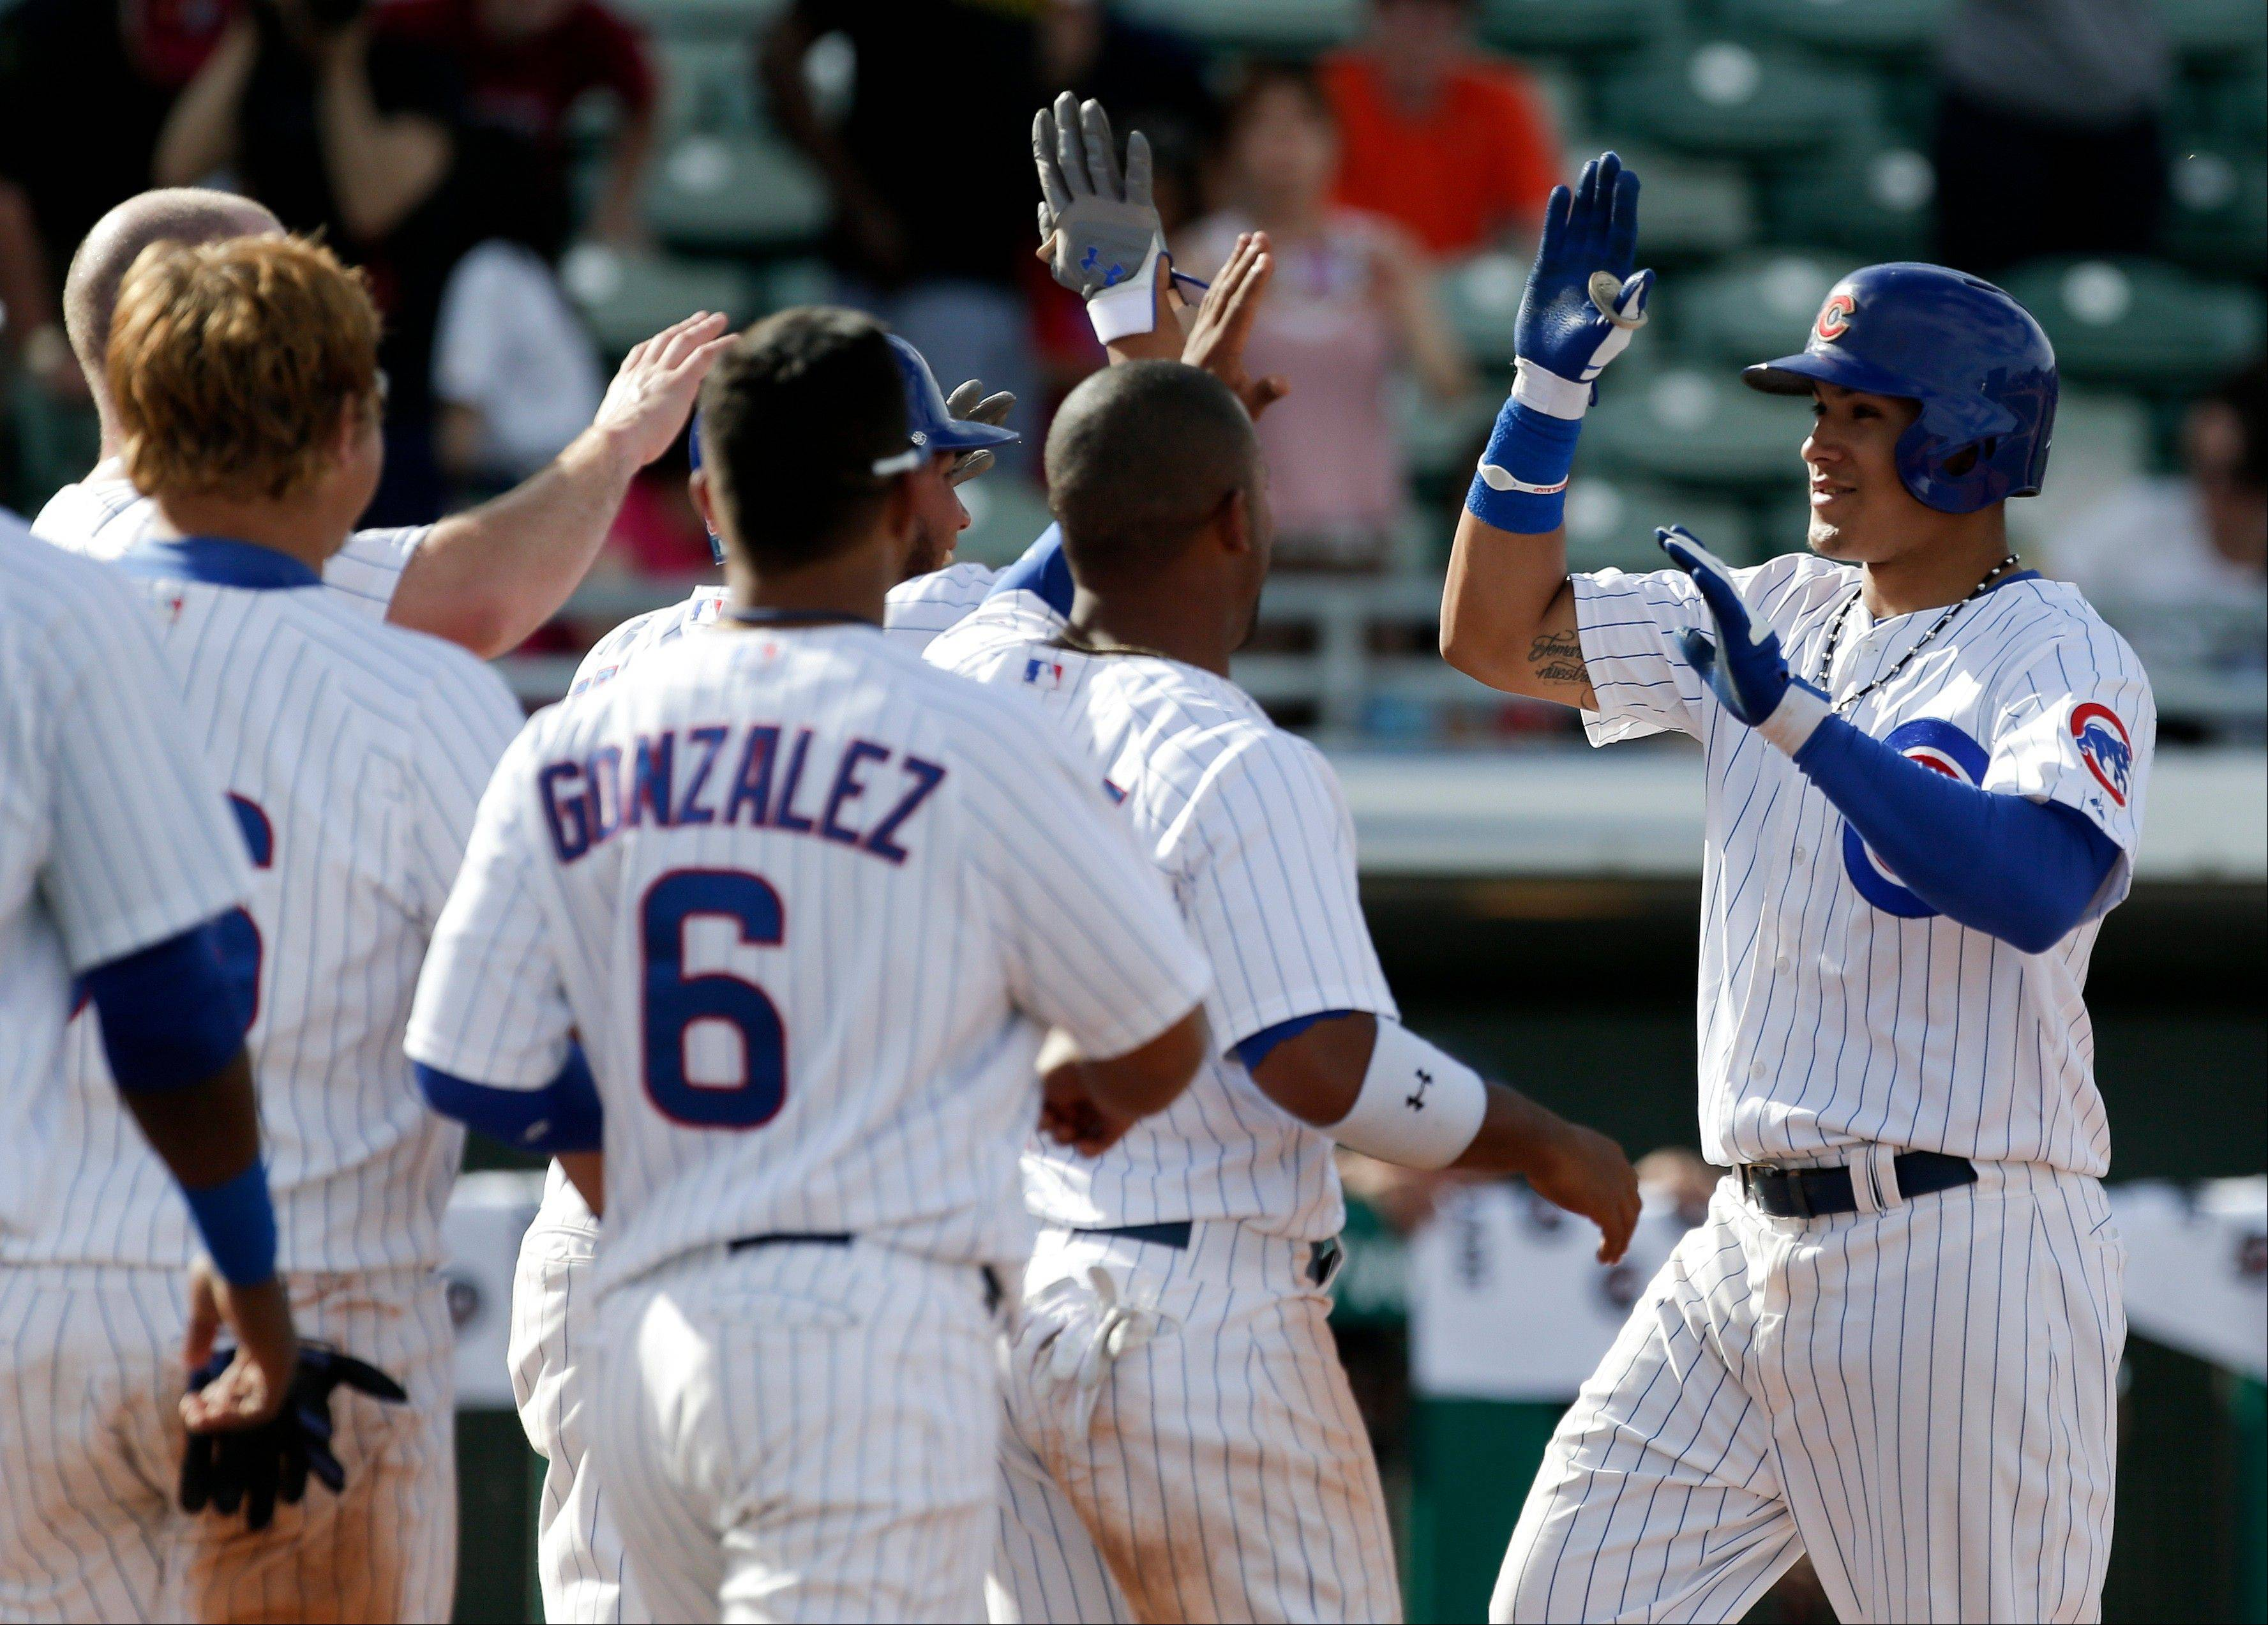 Javier Baez, right, celebrates his walk off 2-run home run against Japan during the bottom the ninth inning of an exhibition spring training baseball game in Mesa, Ariz. Friday, March 15, 2013.